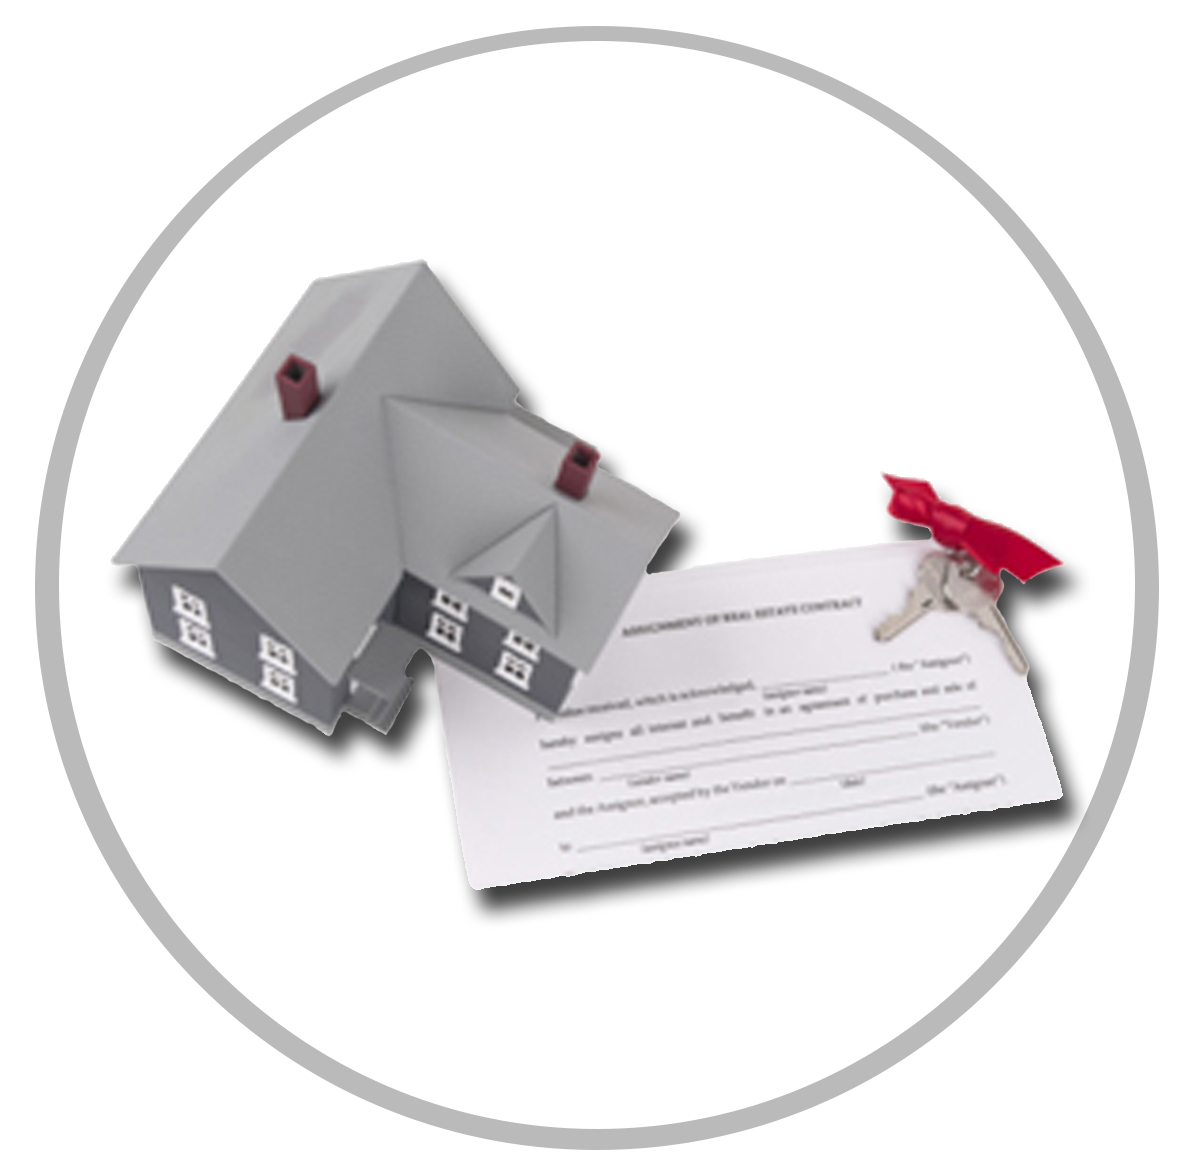 Mortgage lenders, Attorneys, and Insurance Agents